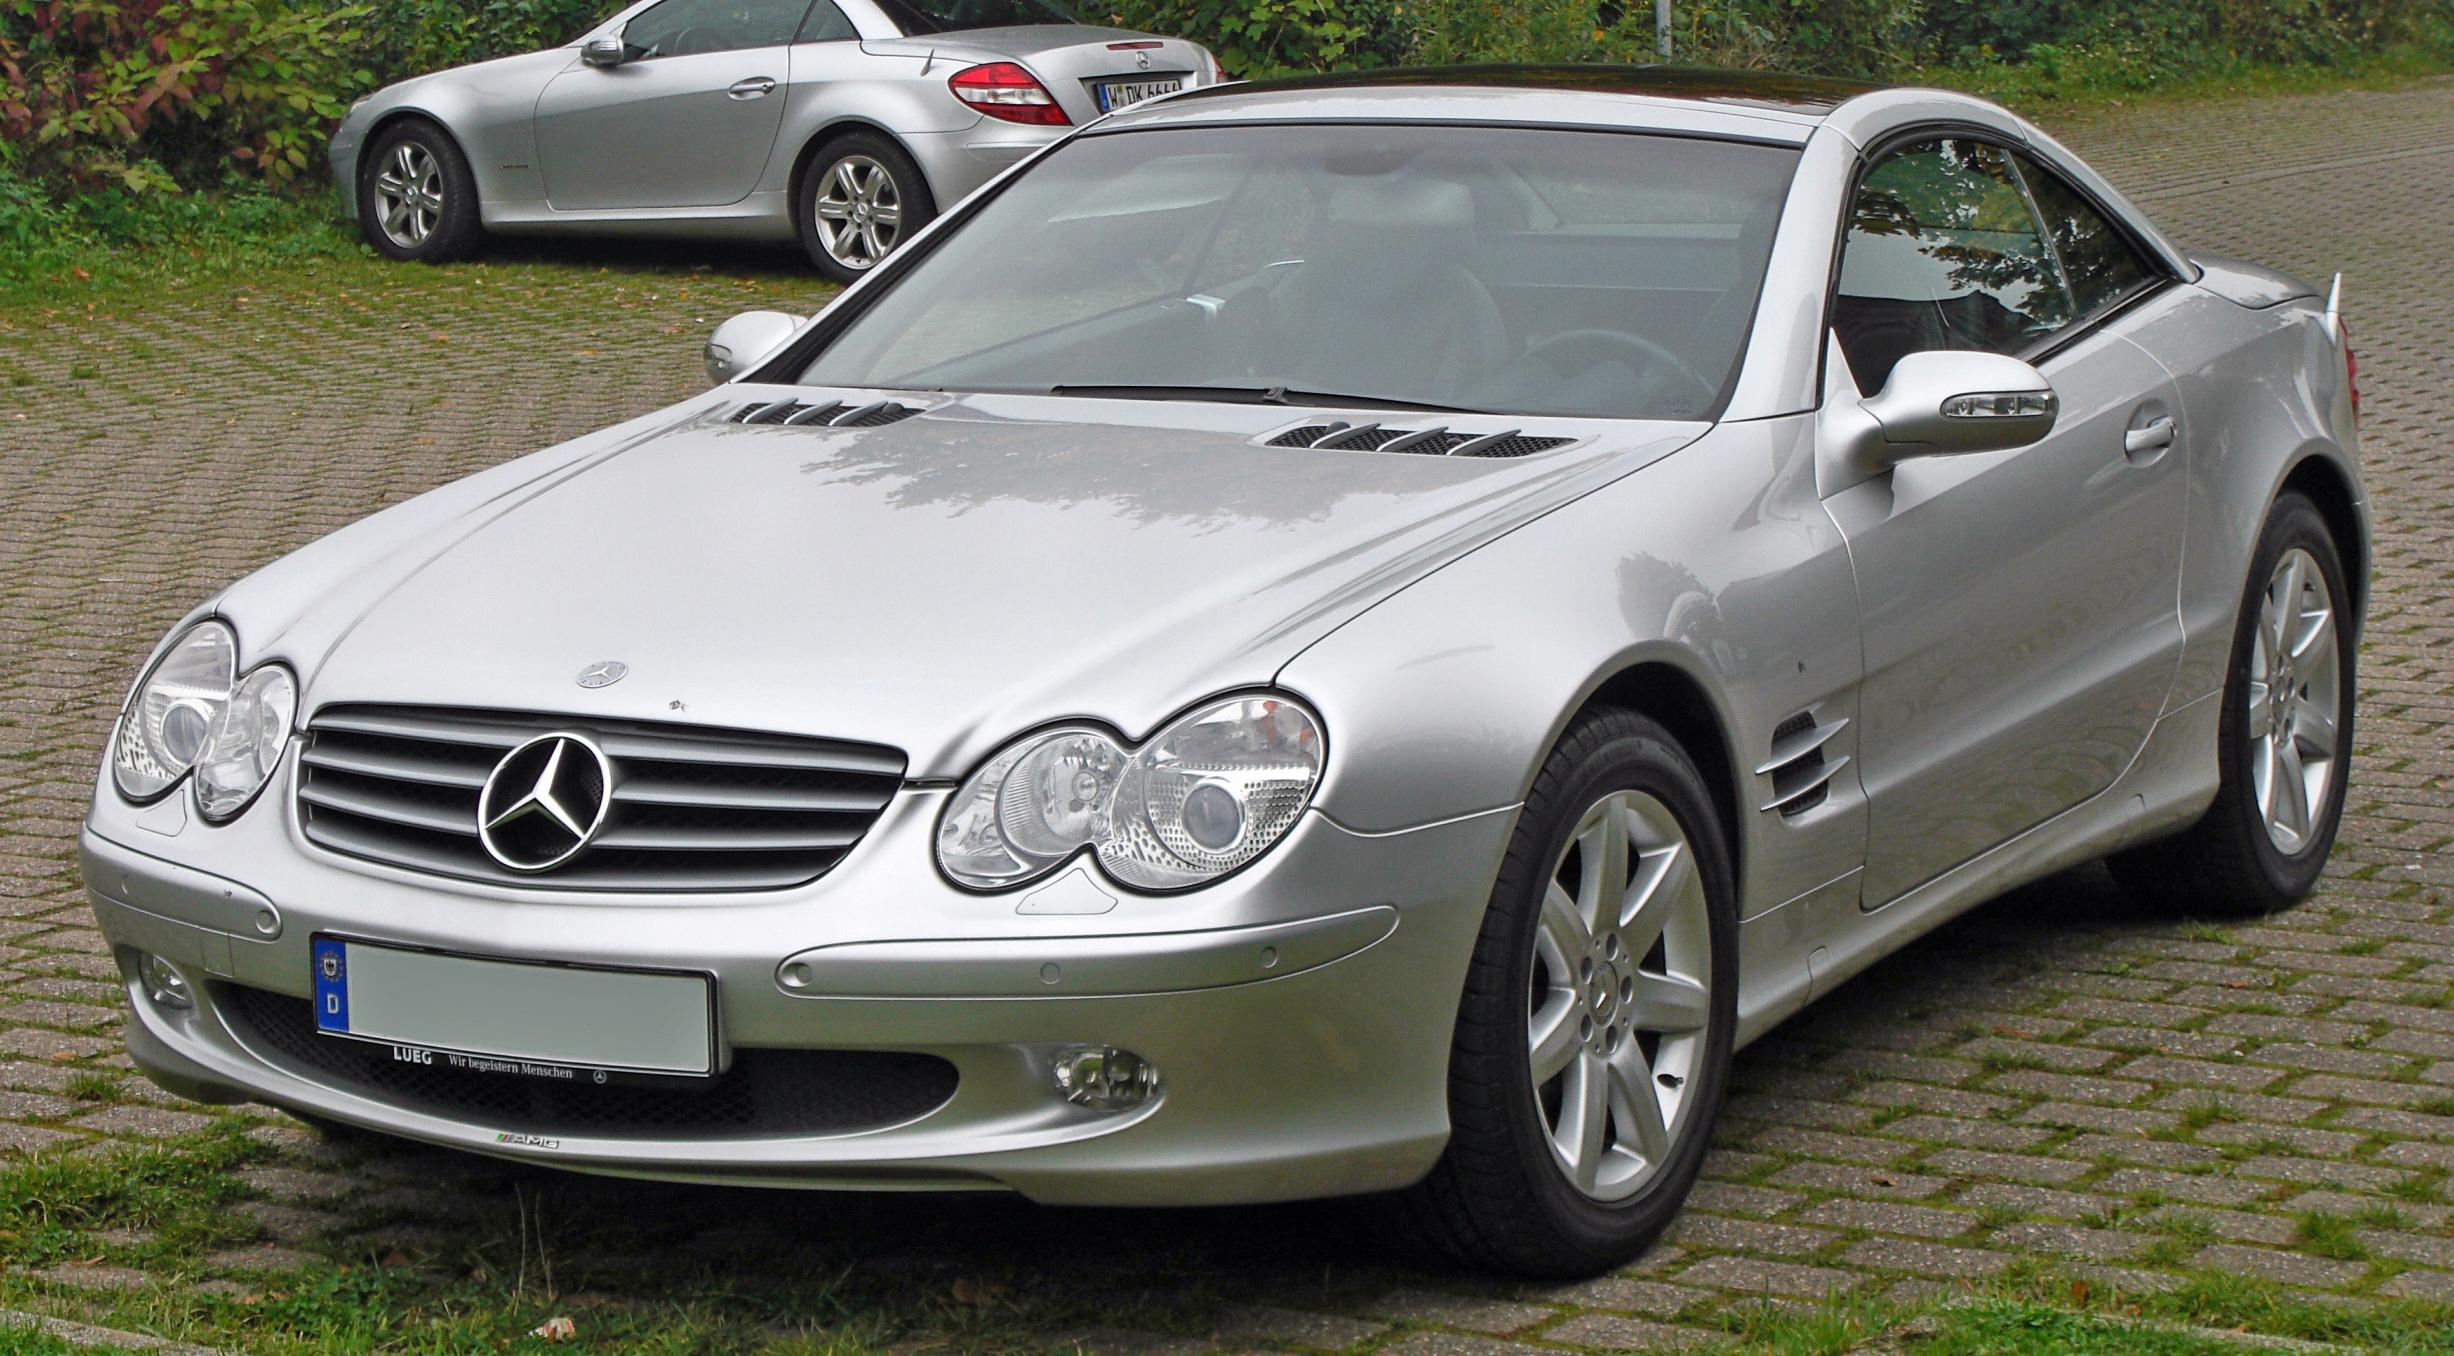 File Mercedes SL 500 front on mercedes benz logo usage